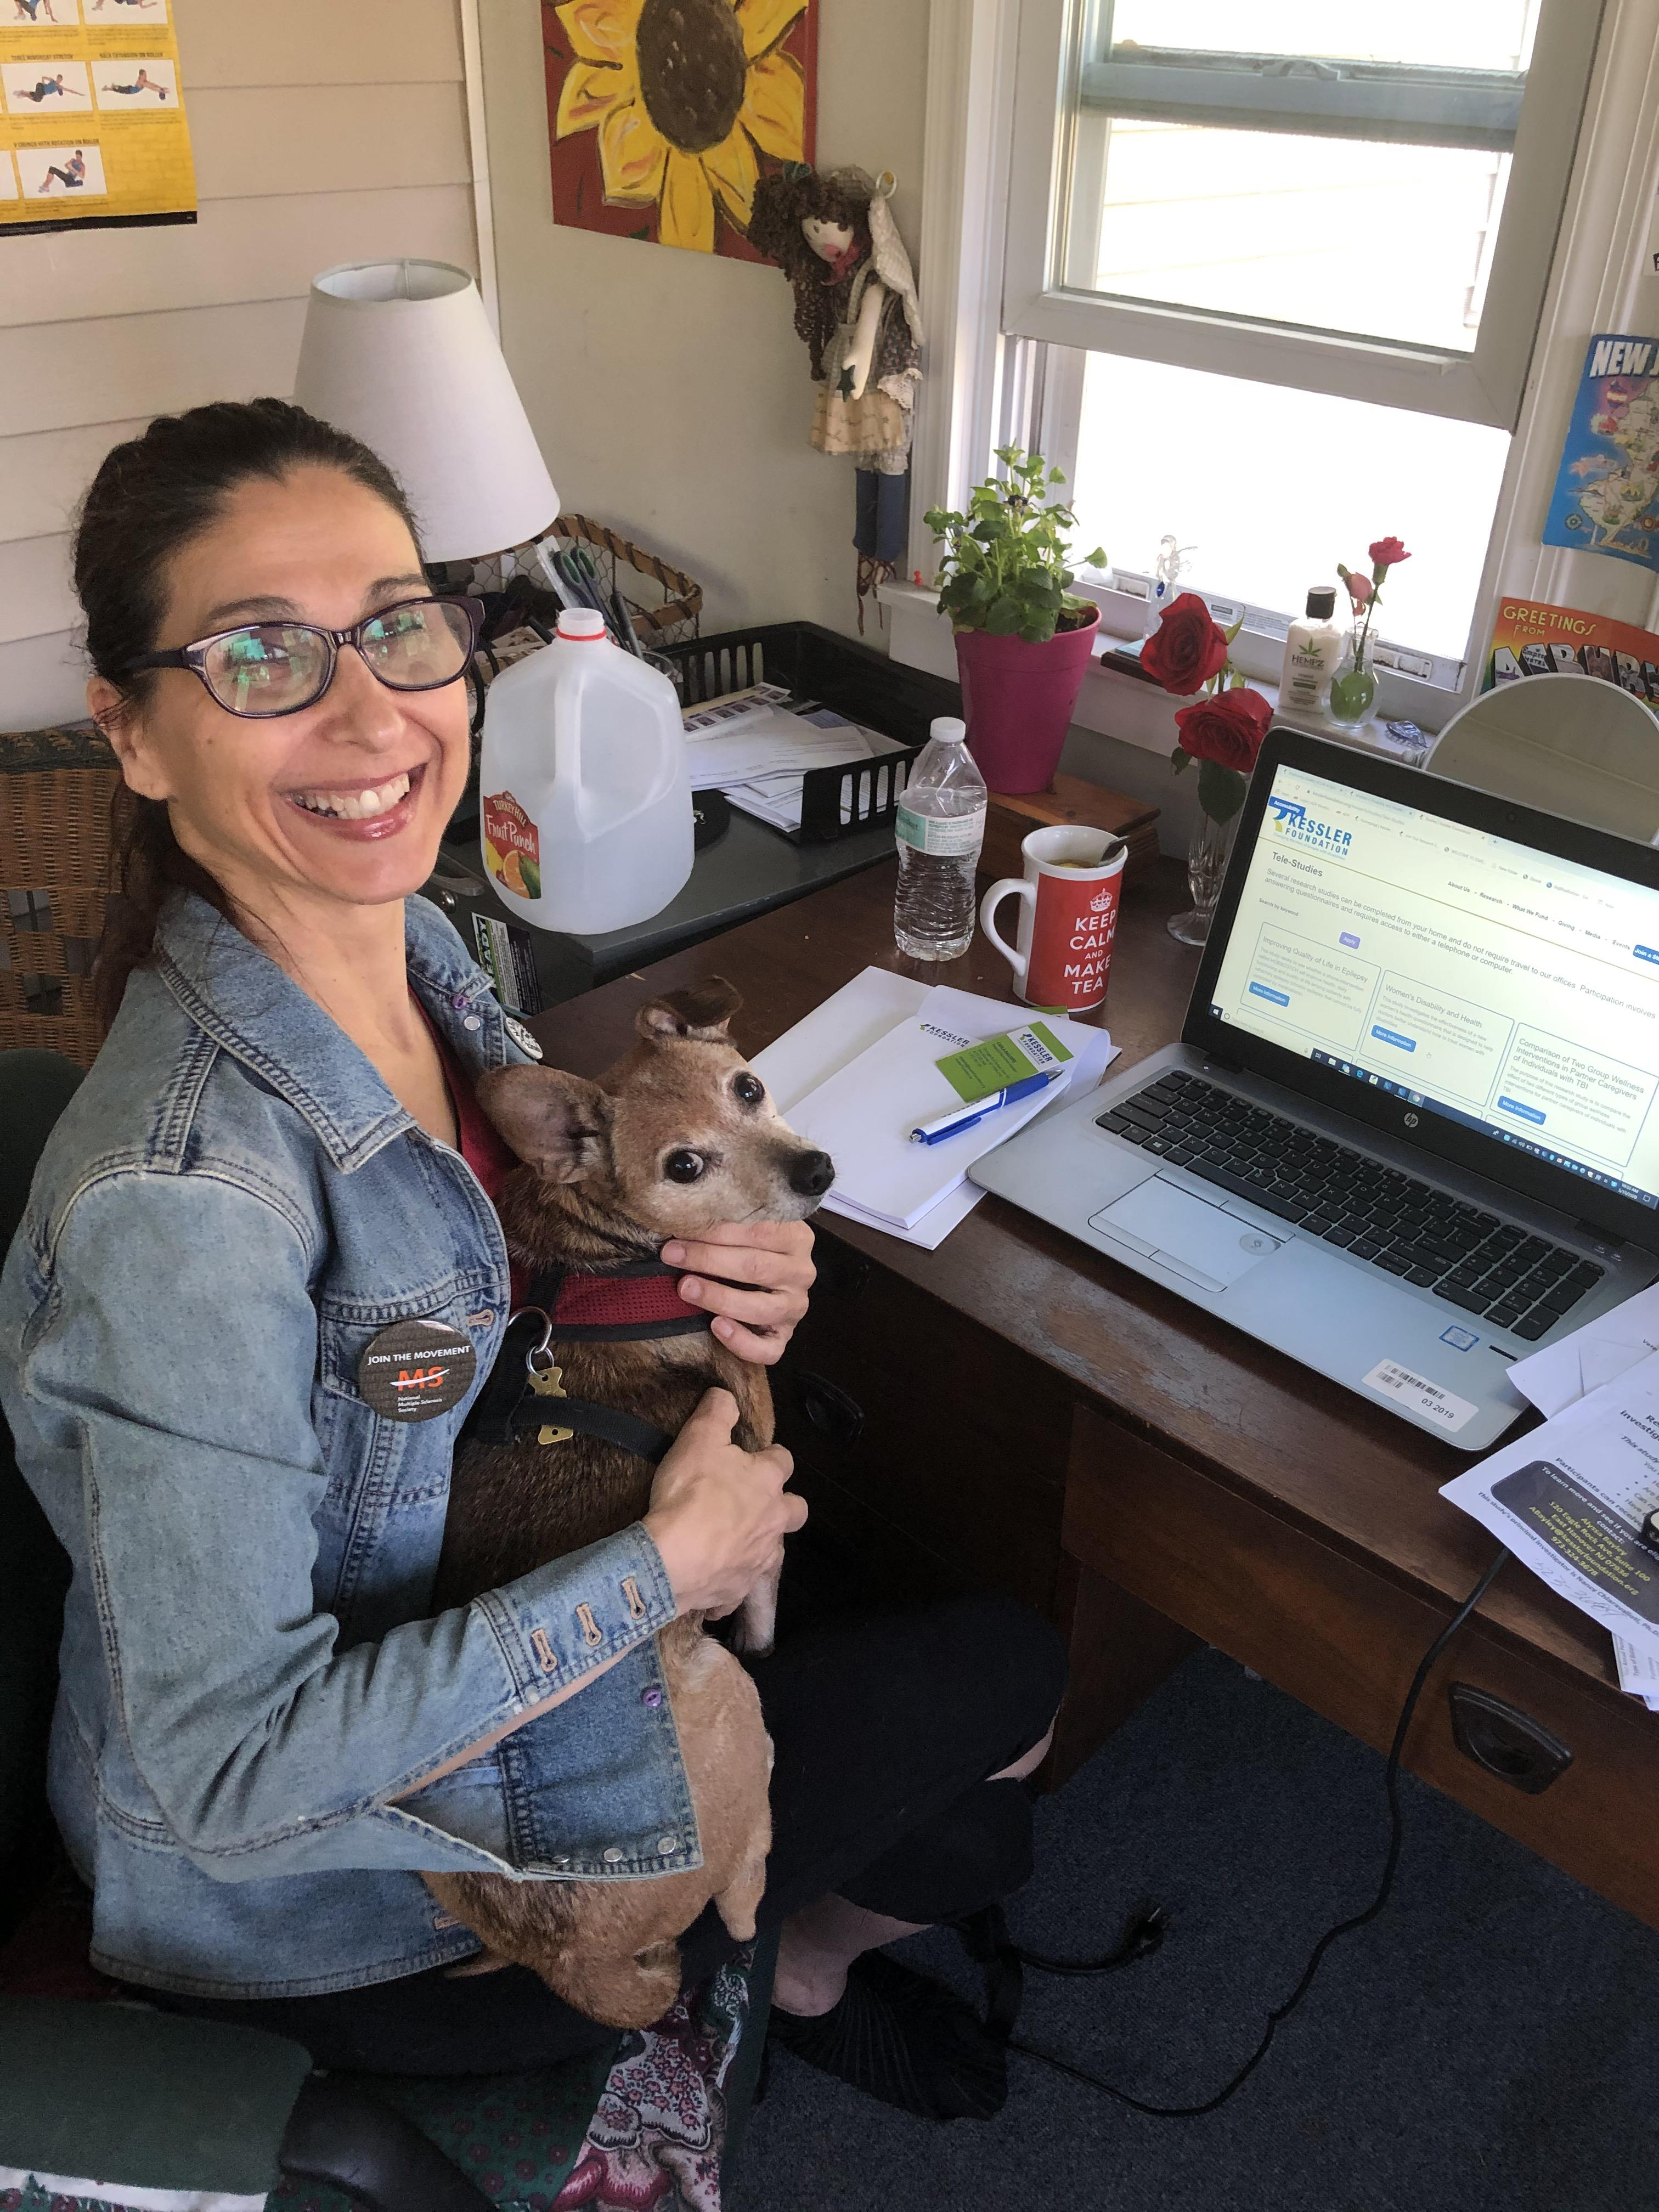 Carla Basante holding her dog, smiling at the camera, and working from home